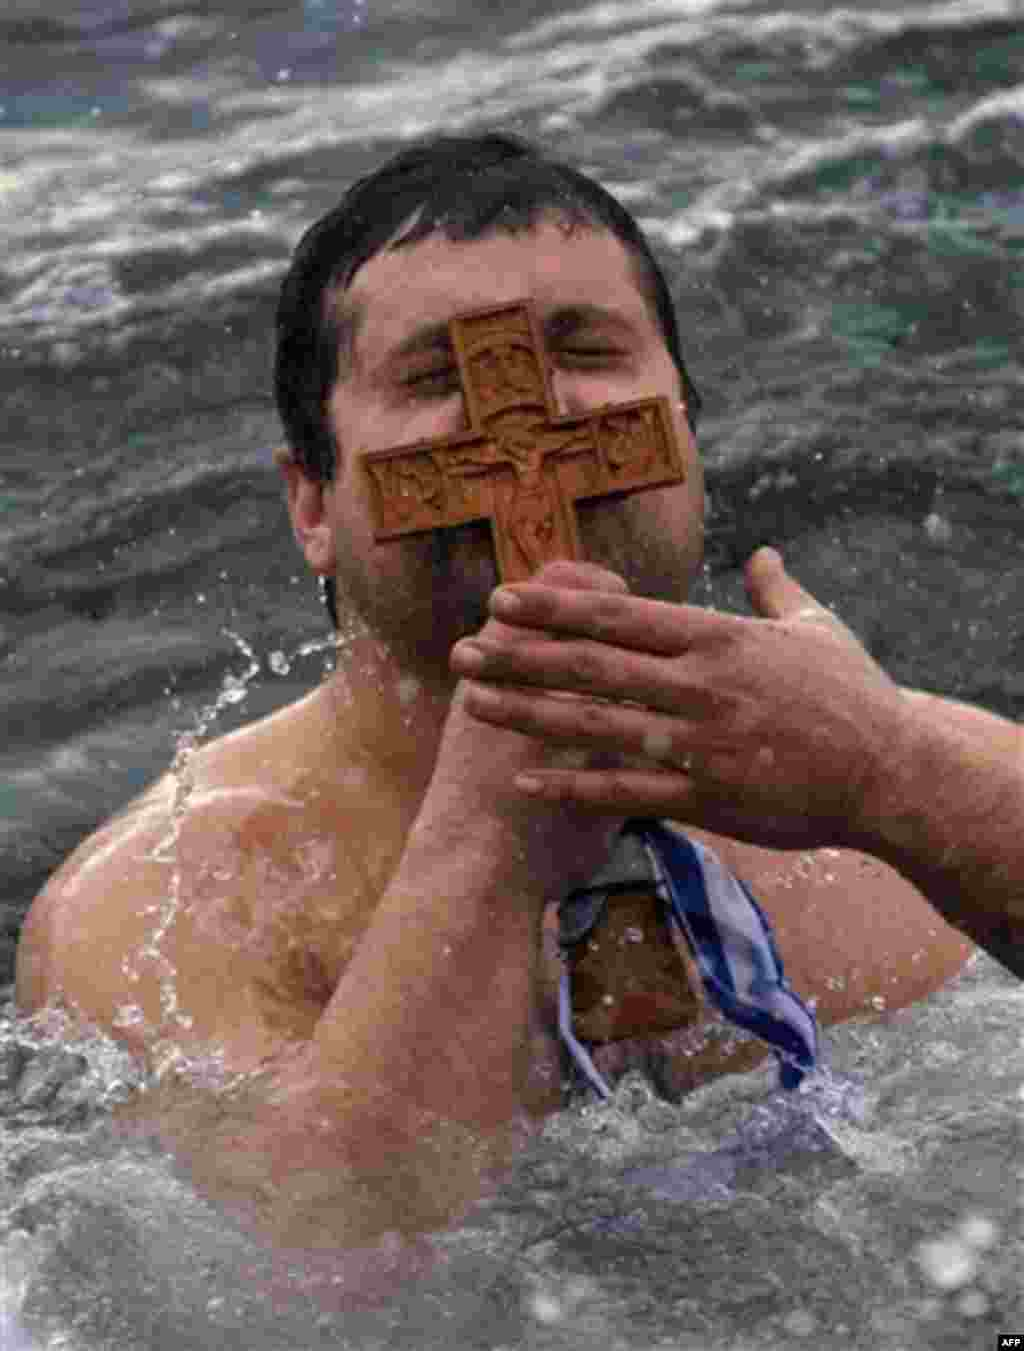 Panagiotis Mantziaris, kisses the wooden cross after being the first to retrieve it, during an Epiphany ceremony to bless the water in Greece's northern port city of Thessaloniki, Friday, Jan. 6, 2012. Similar ceremonies to mark Epiphany day were held acr